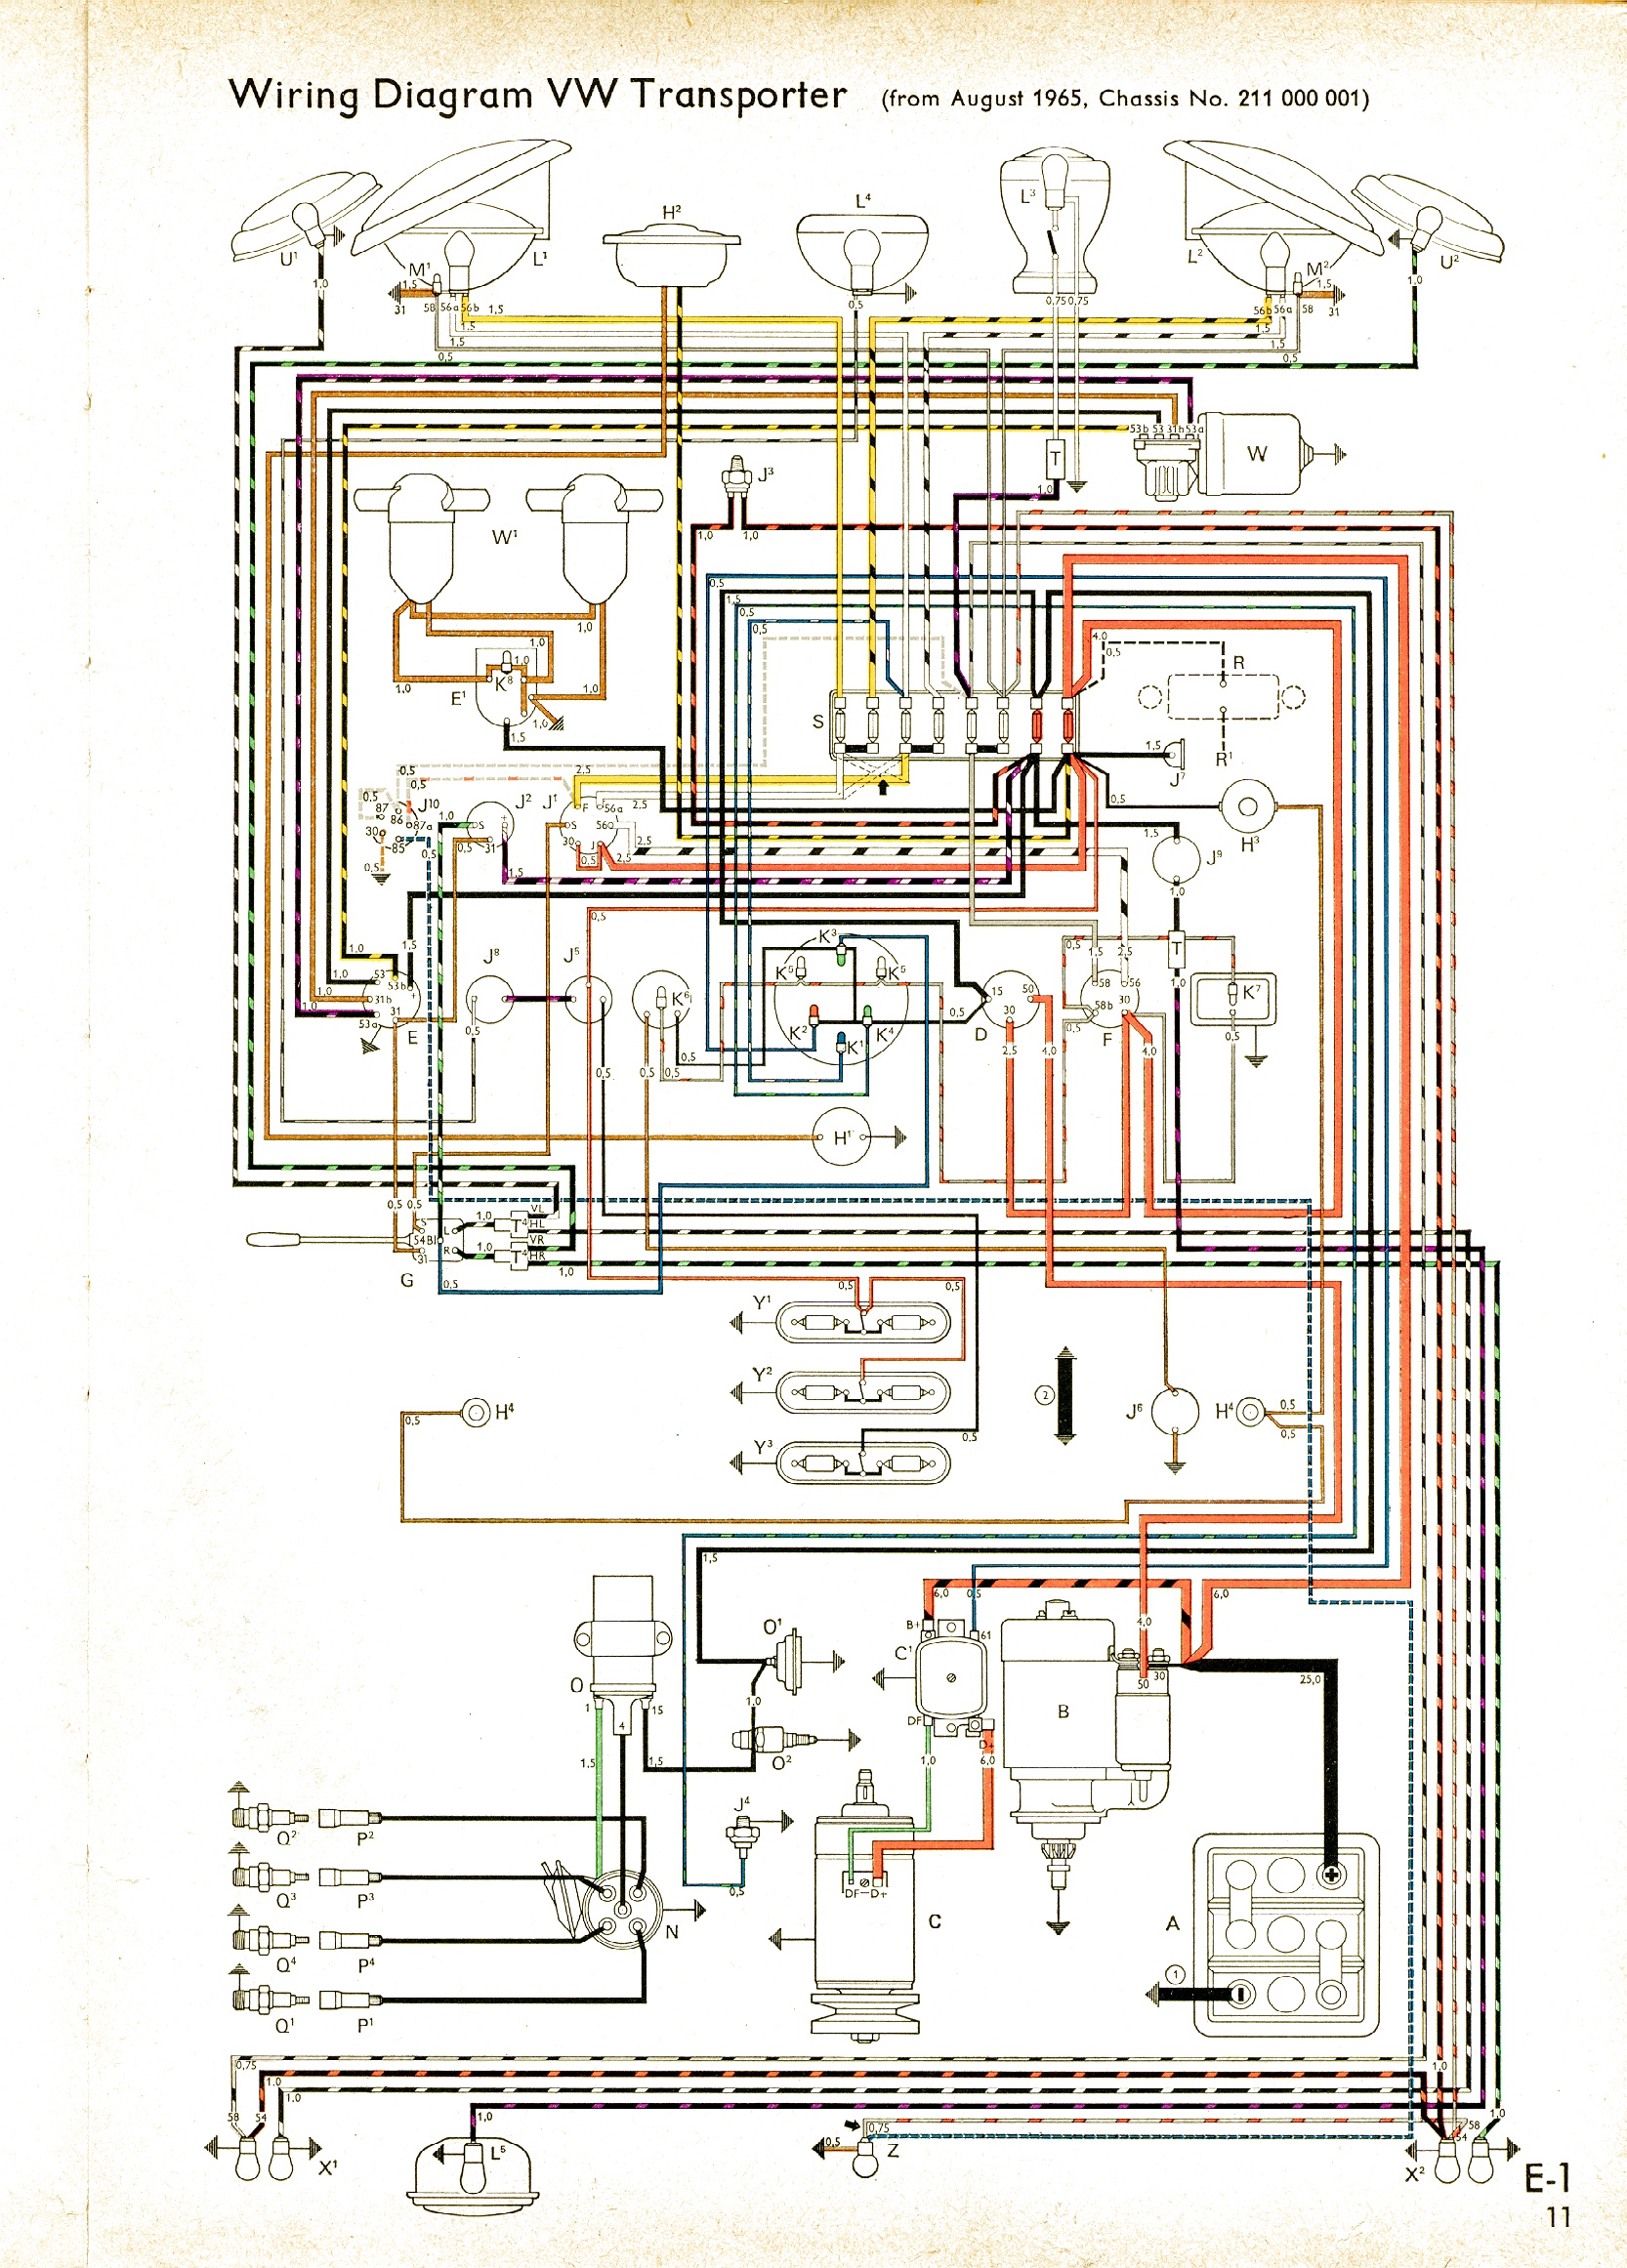 vintagebus com vw bus and other wiring diagrams rh vintagebus com VW Bus Wiring Harness 72 VW Bus Engine Diagram